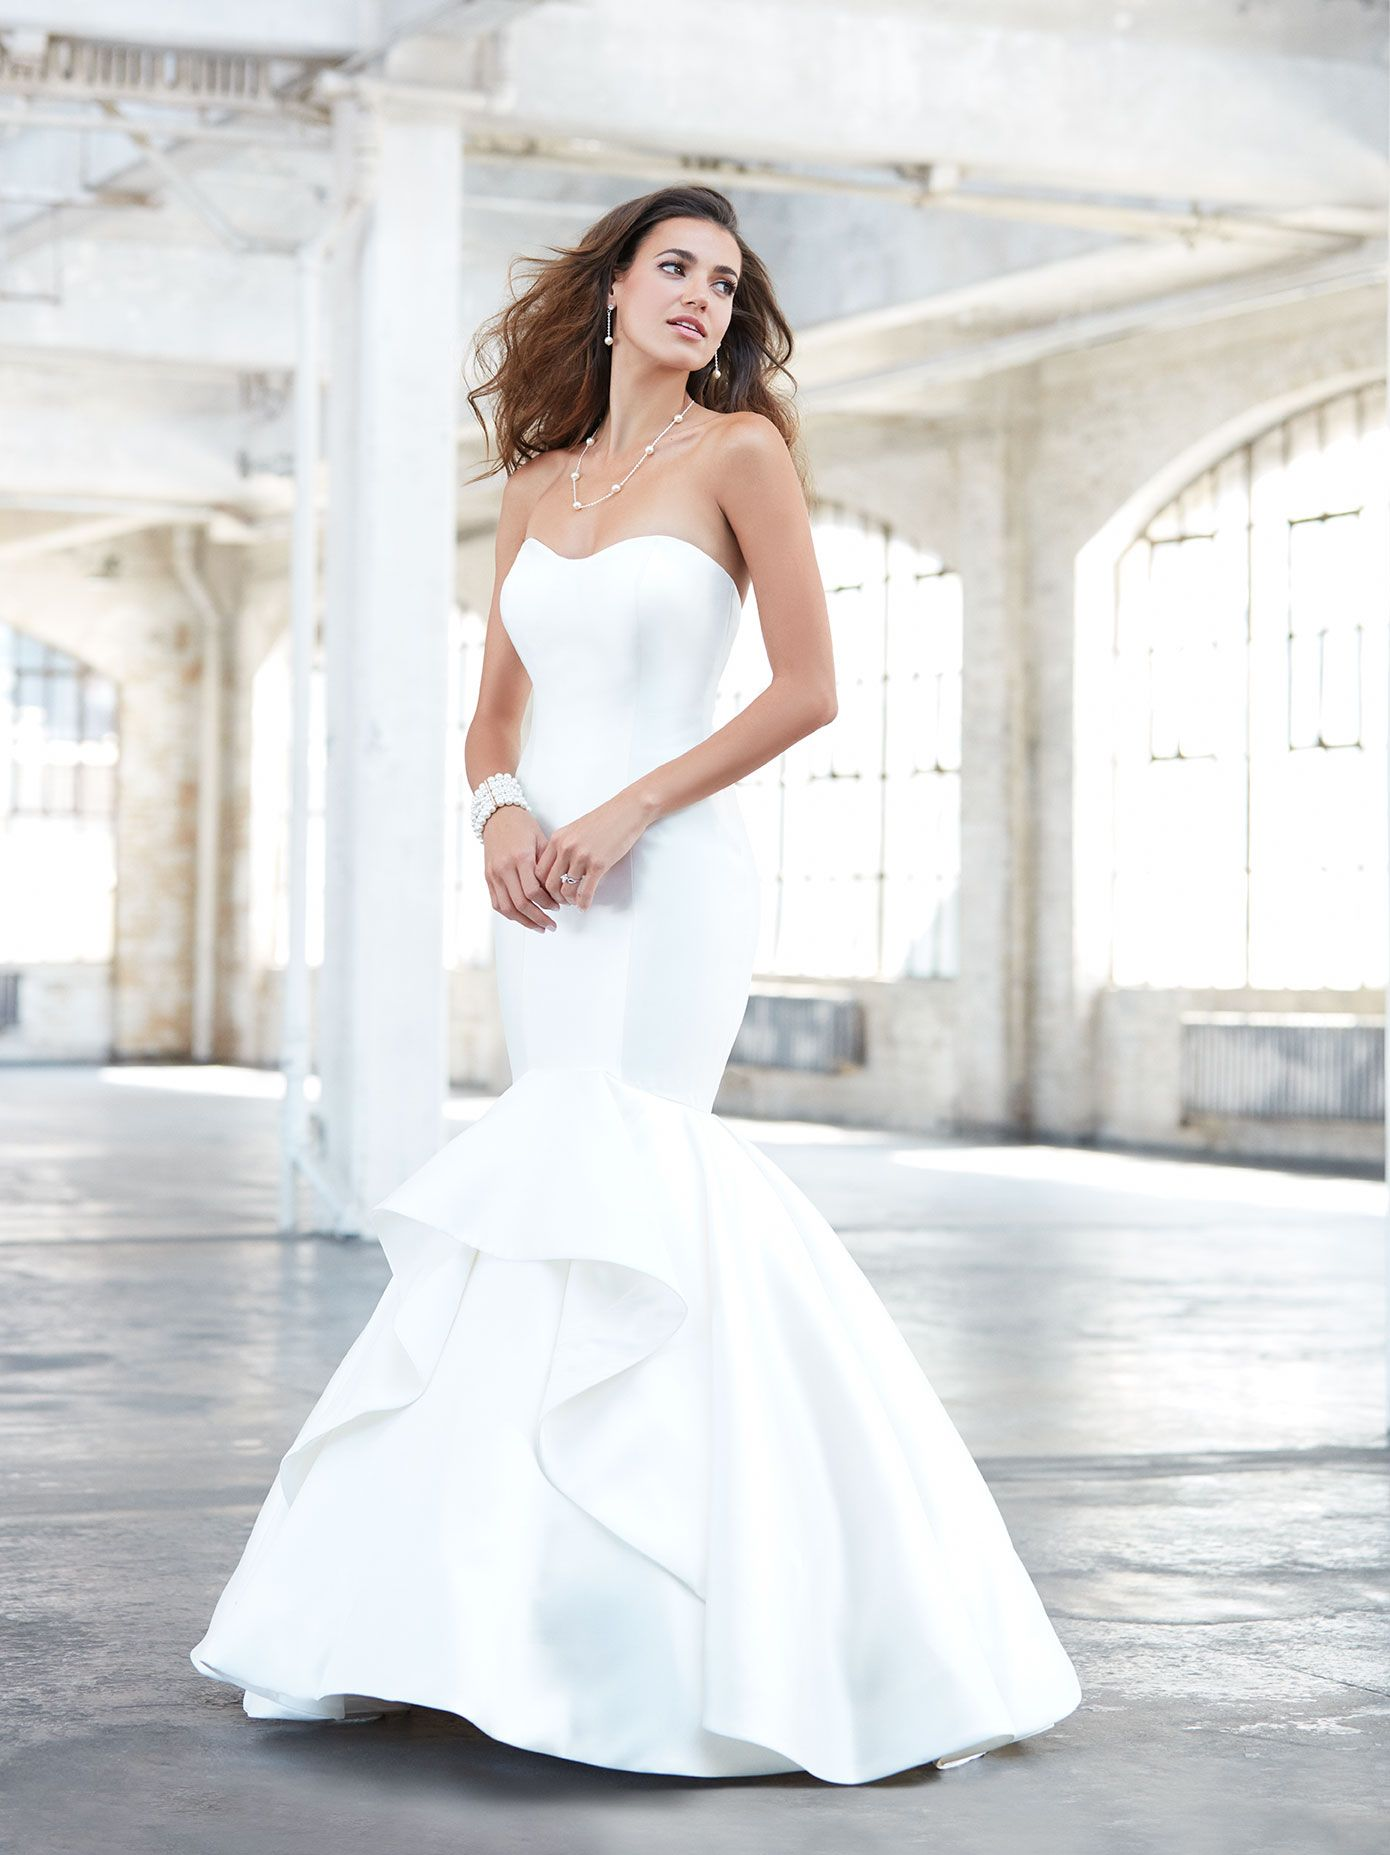 Designer madison james style mj available at bliss bridal in